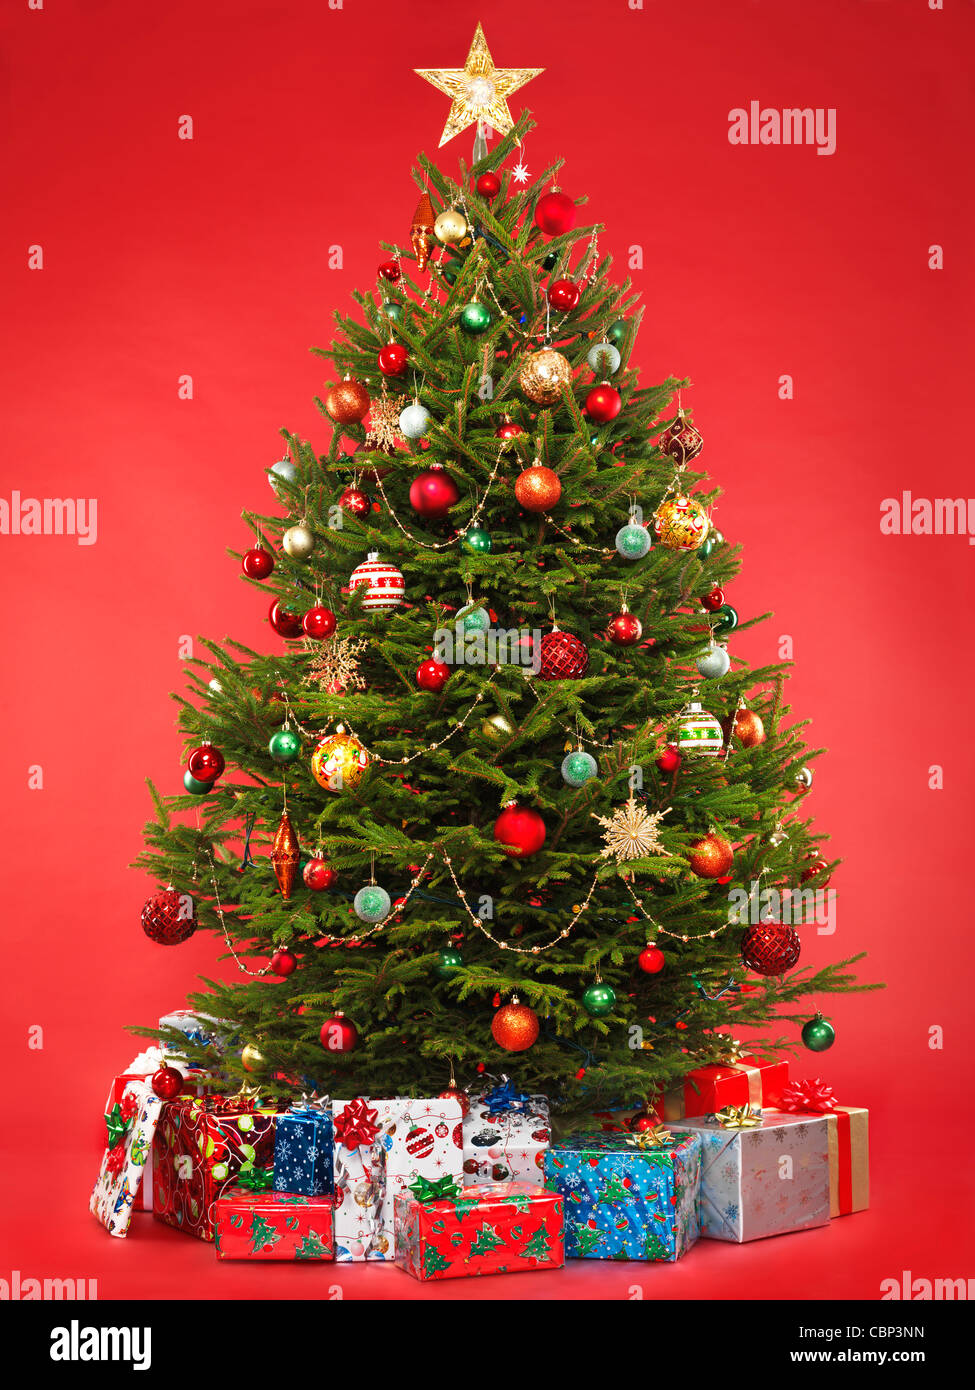 Beautiful decorated Christmas tree with colorful wrapped gifts under it. Isolated on bright red background. - Stock Image